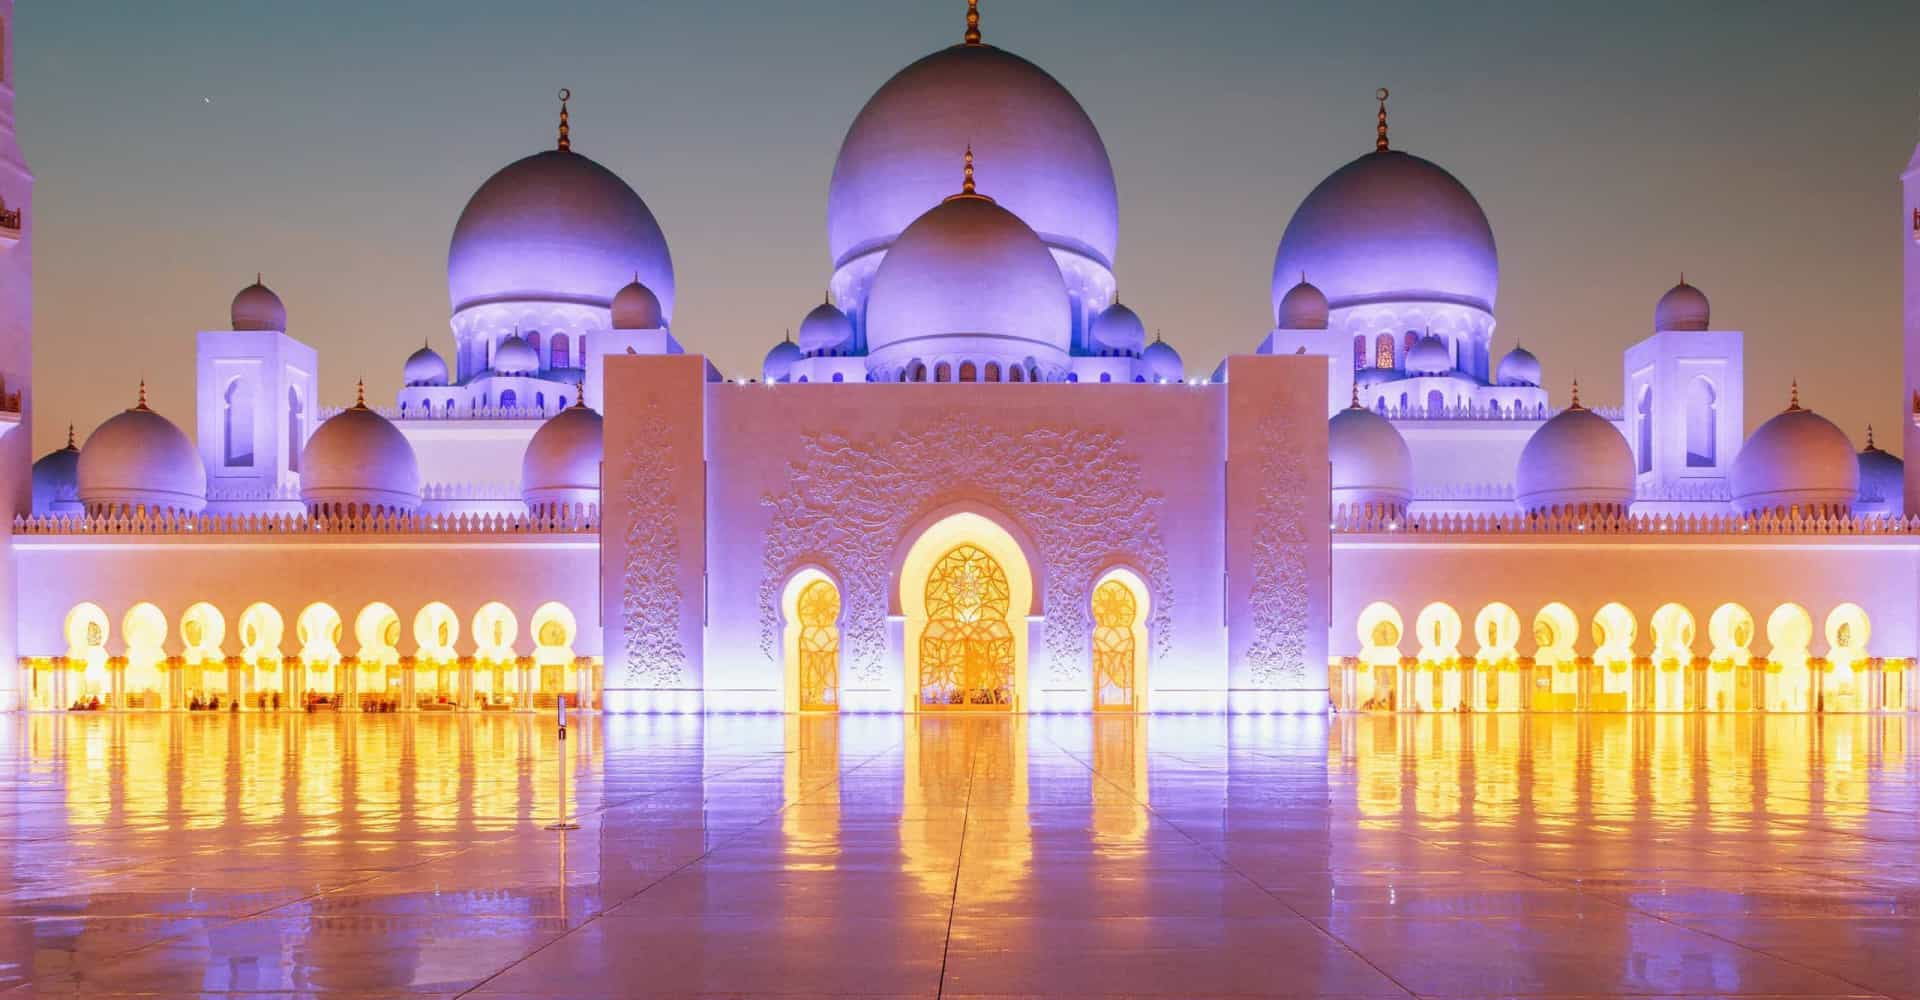 The world's largest mosques